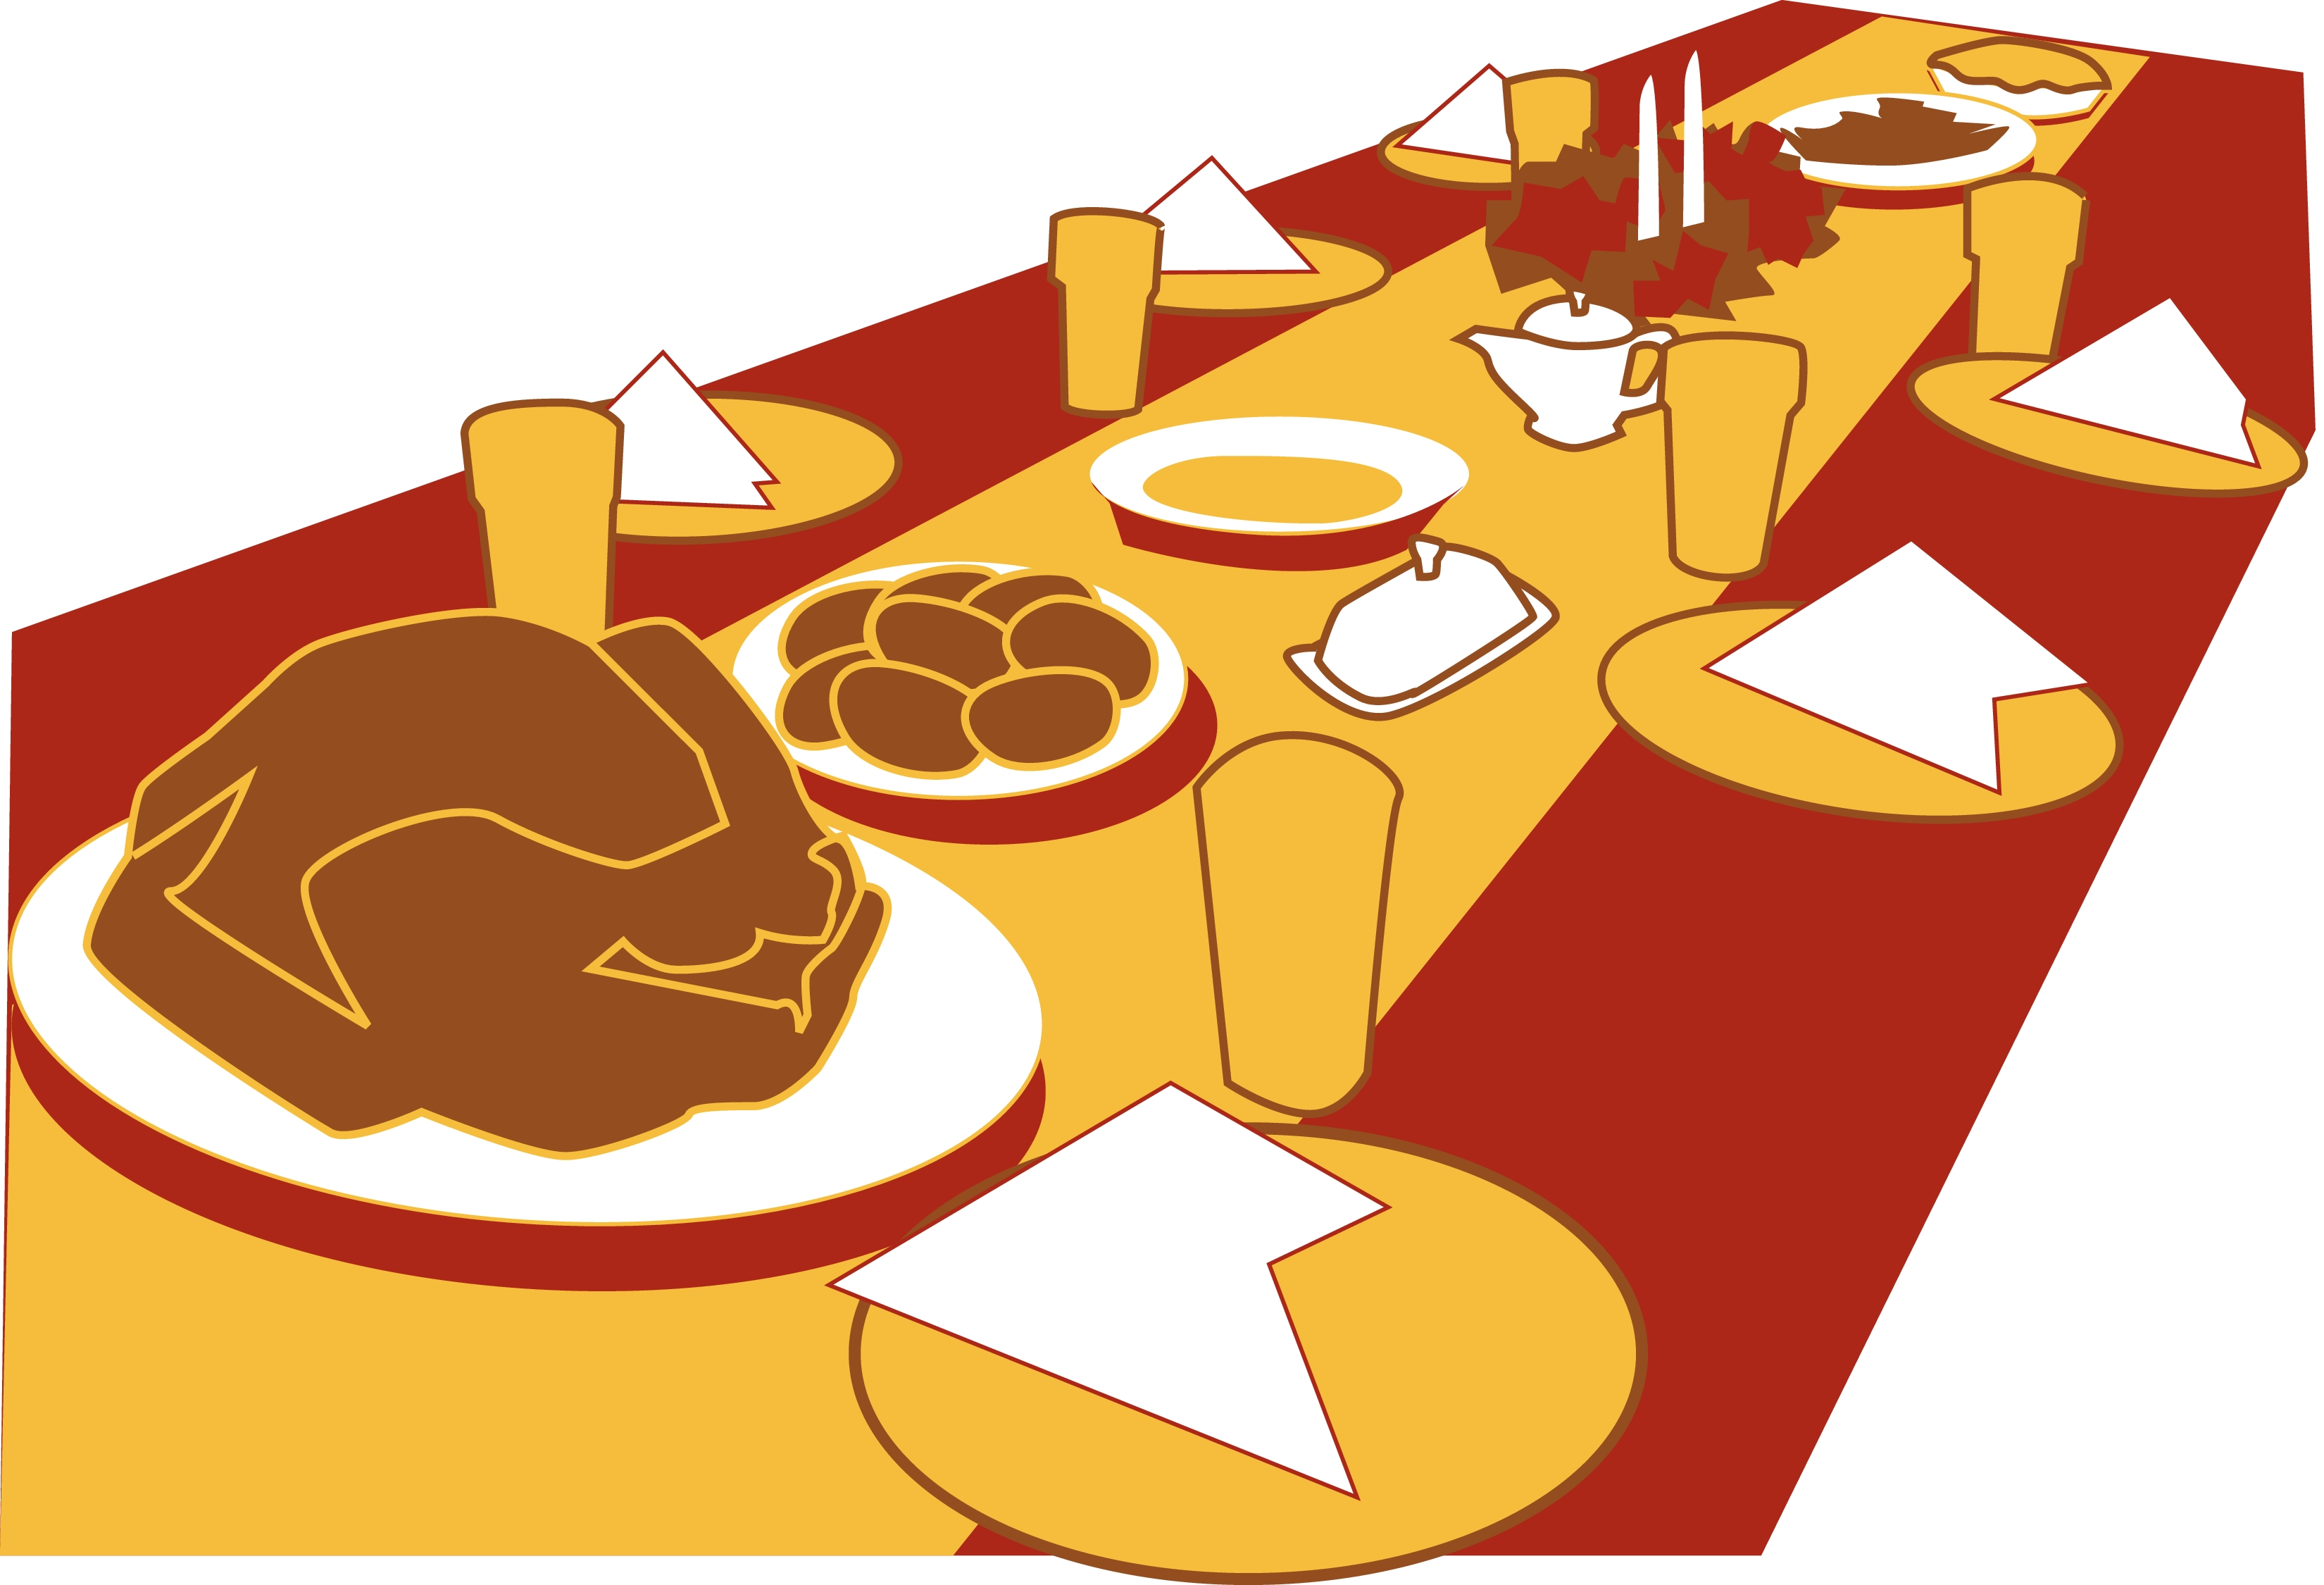 Free banquet table food clipart.